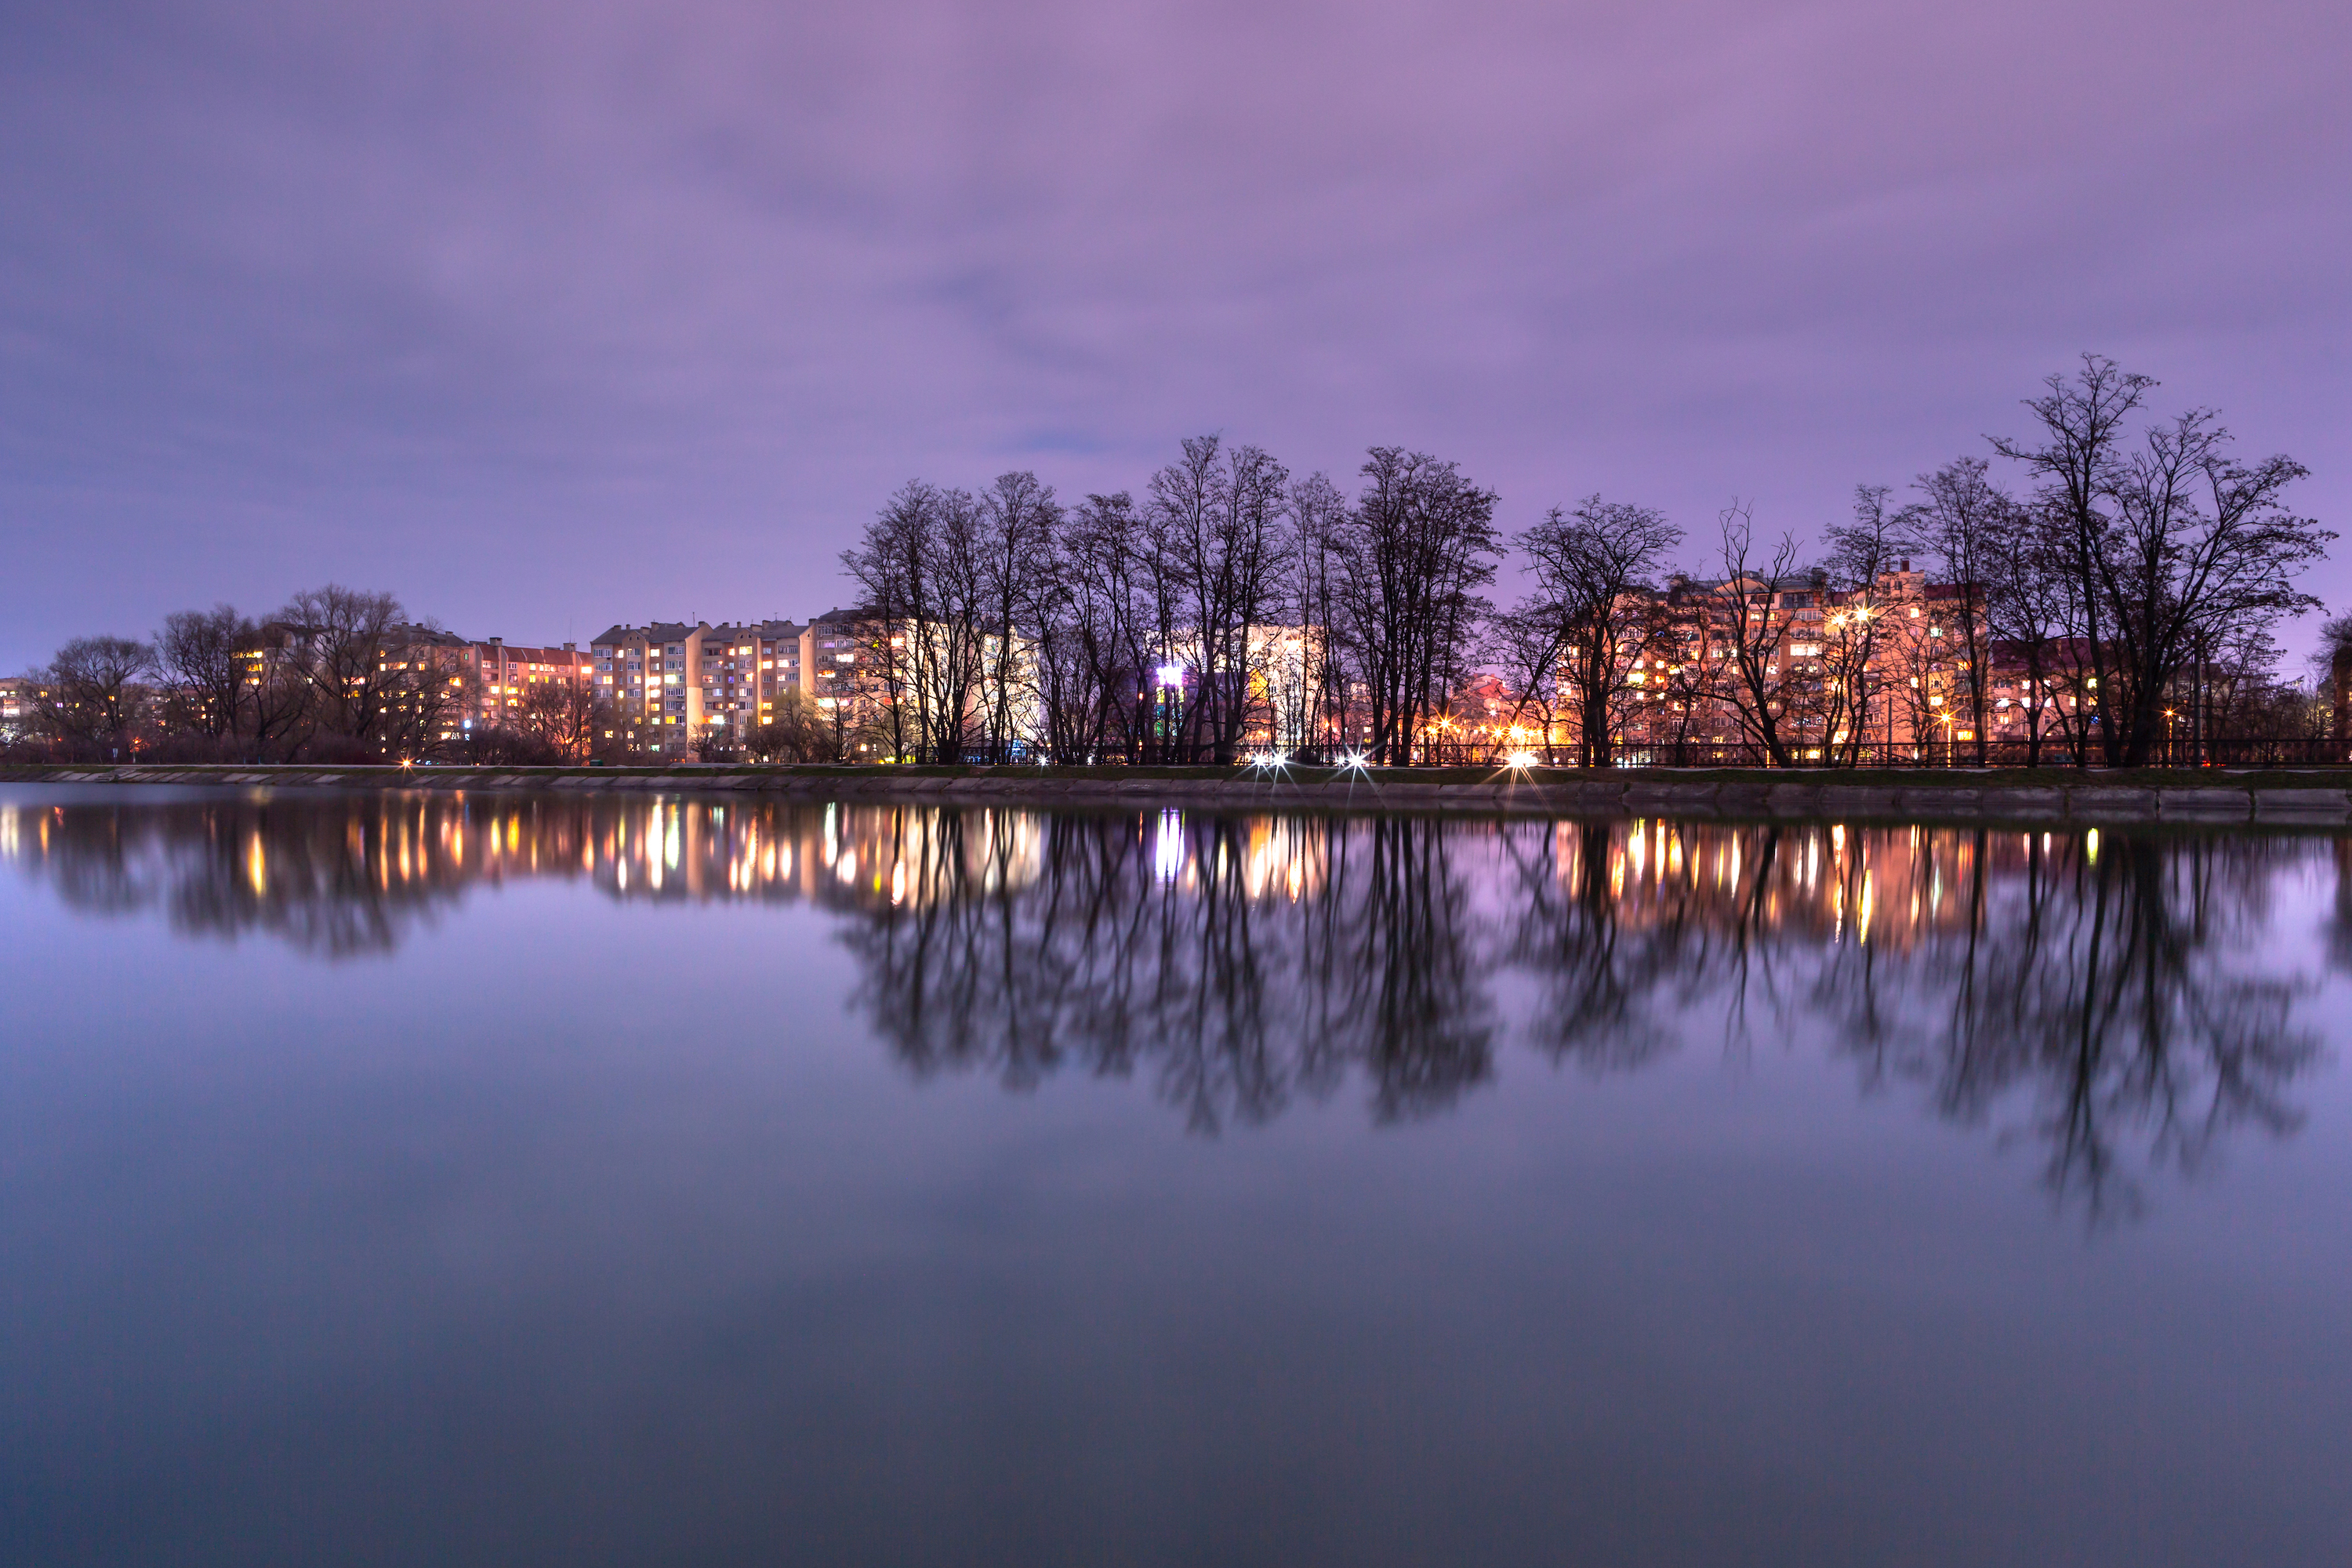 View on Ivano-Frankivsk city from the lake at night example image 1